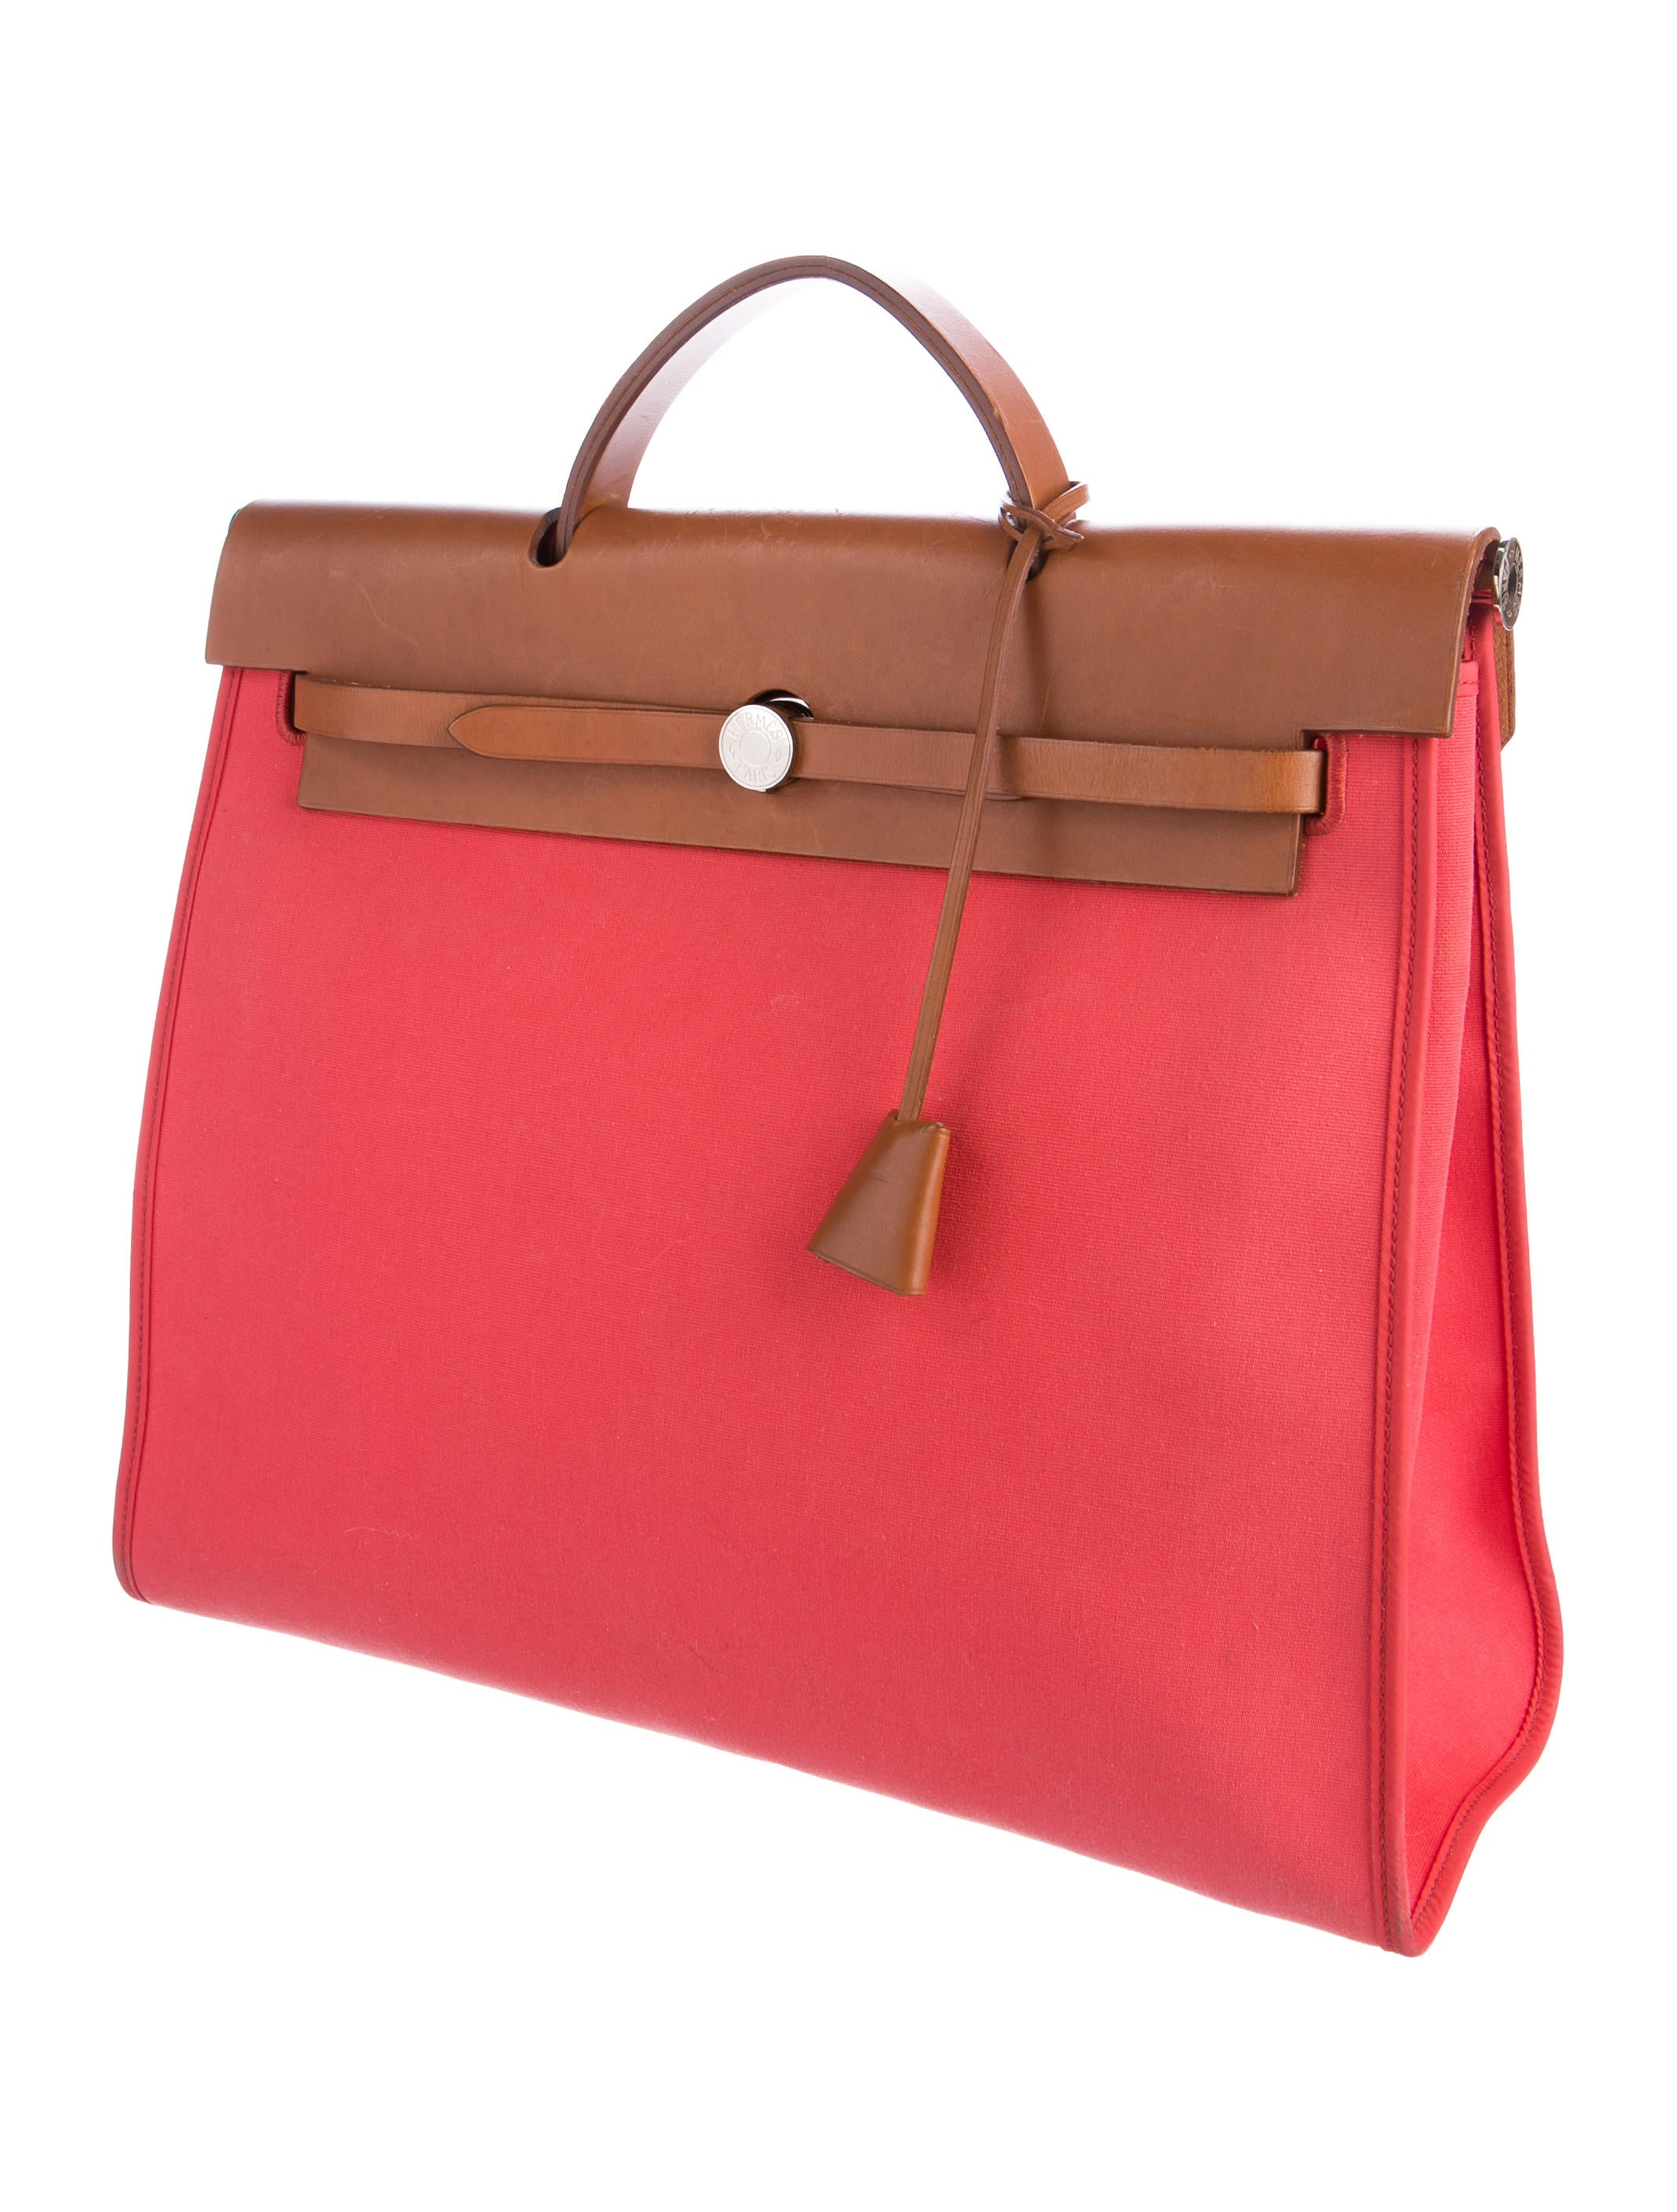 dc0f69e3f ... low cost hermès herbag zip 39 handbags her115554 the realreal 9bb2b  9a09f